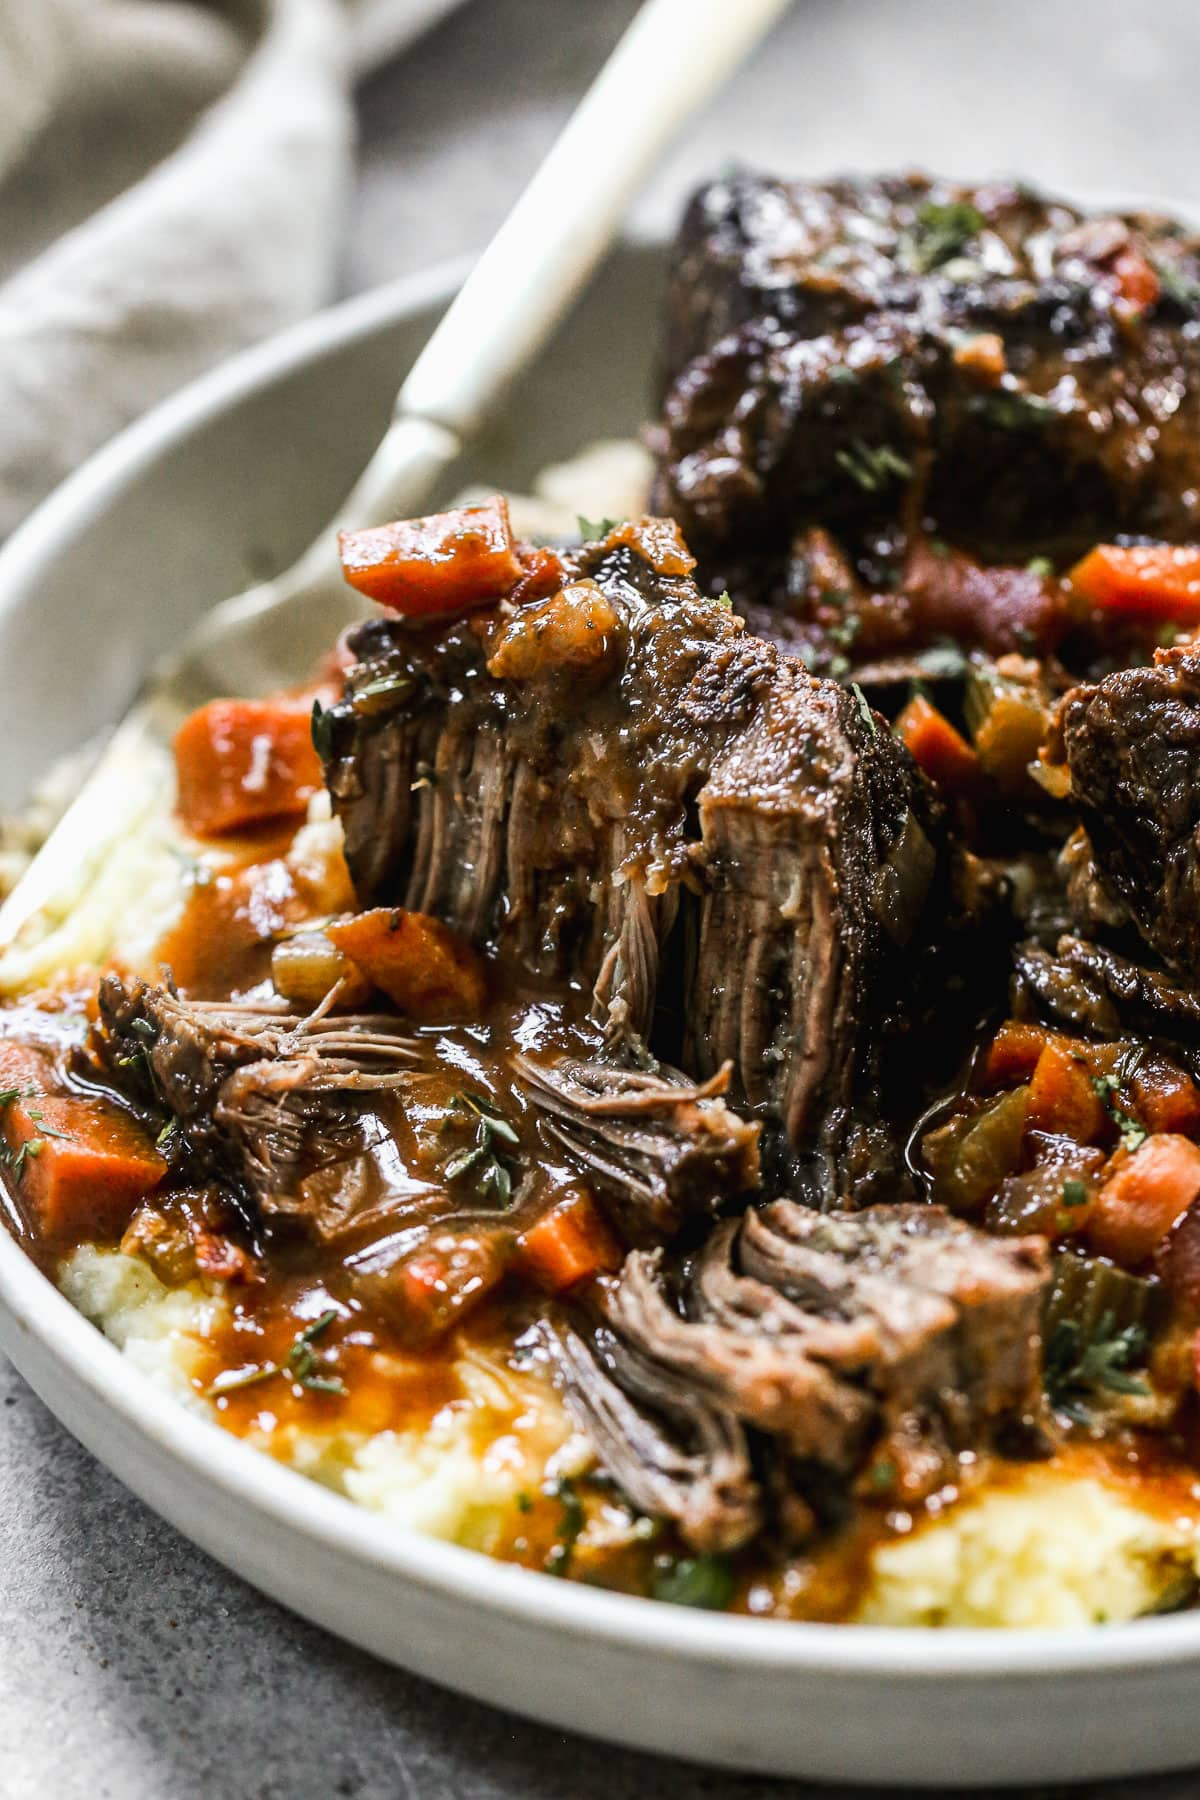 Chianti Braised Short Ribs with Horseradish Cream